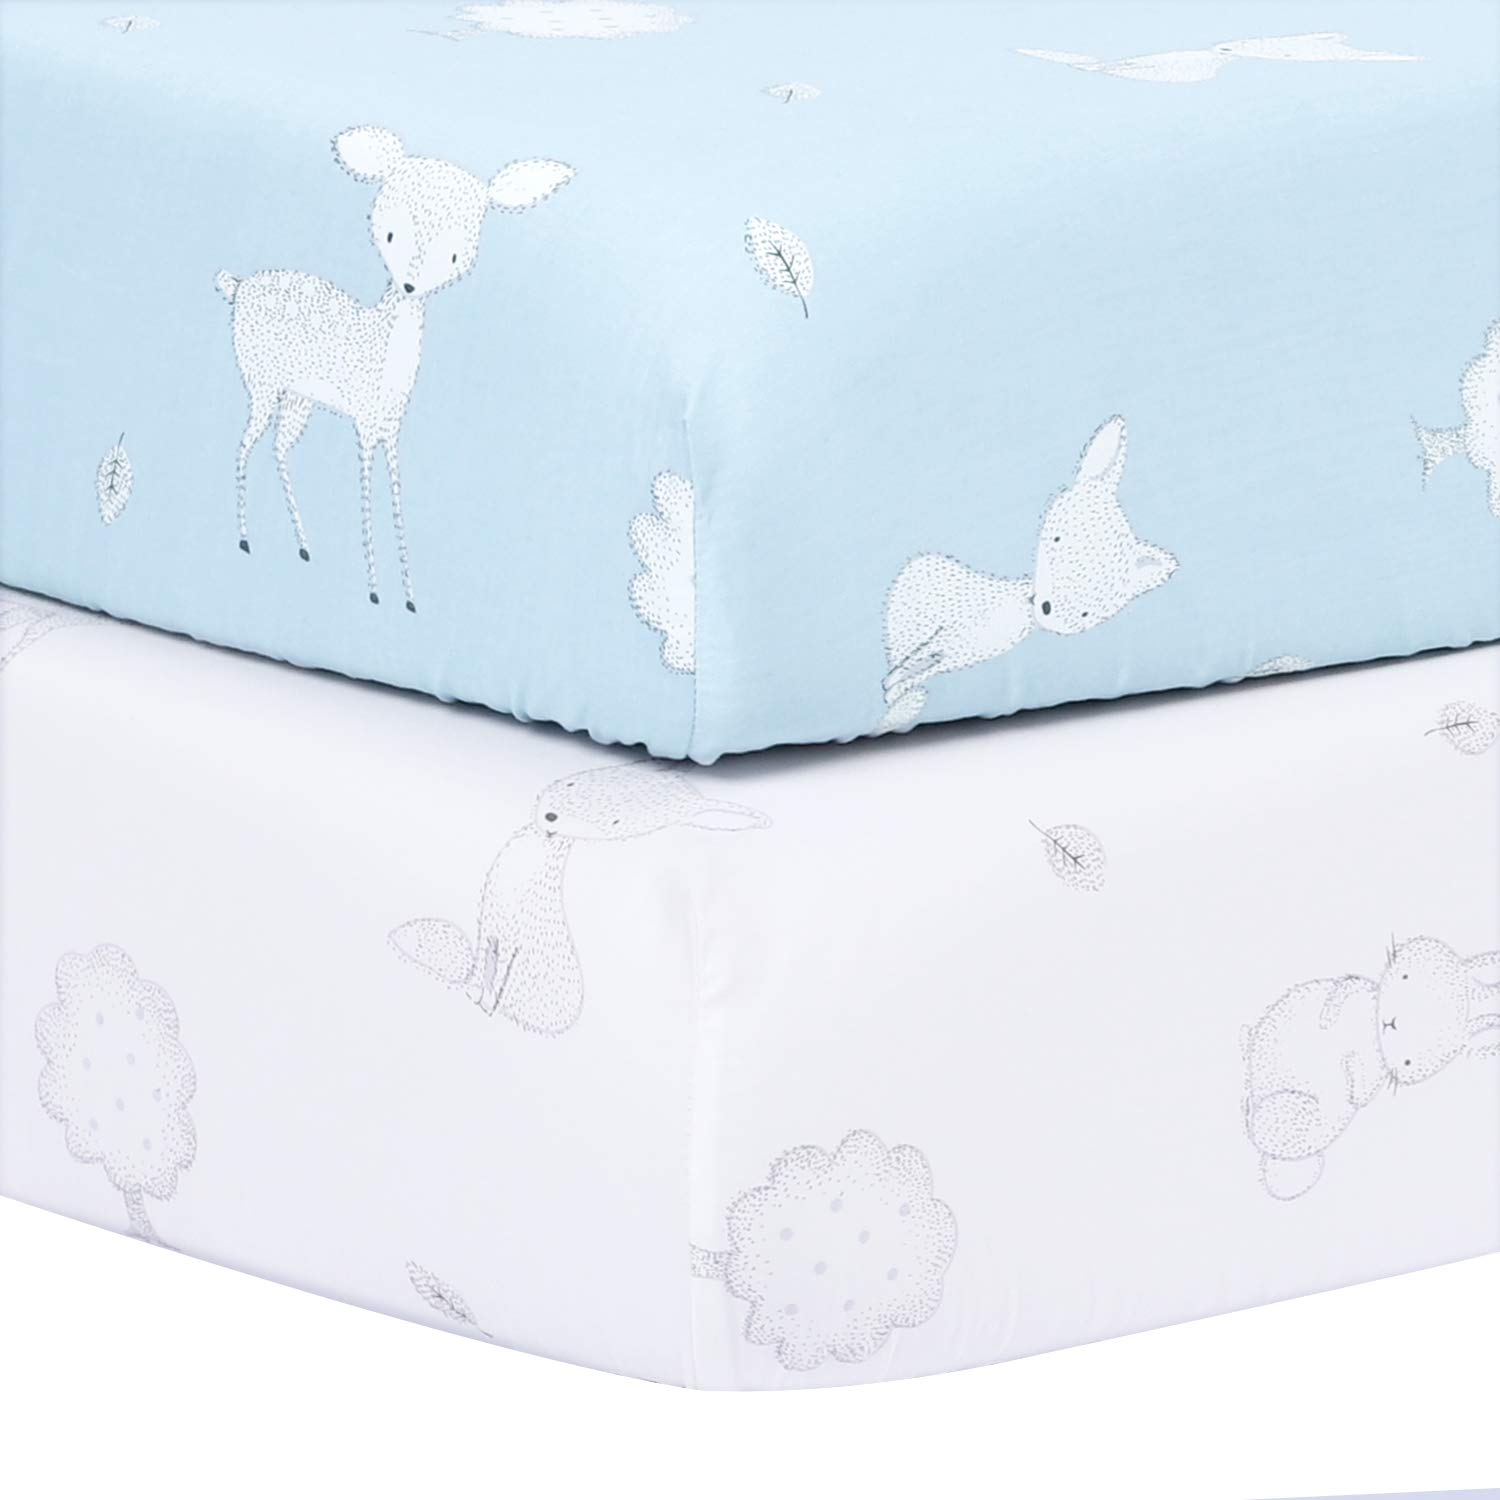 TILLYOU Bamboo Crib Sheets Set Woodland, Printed Toddler Bed Sheets for Baby Girls and Boys, Hypoallergenic Soft Breathable, 28''x52'', 2 Pack Fairy Messenger (Blue & White) by TILLYOU